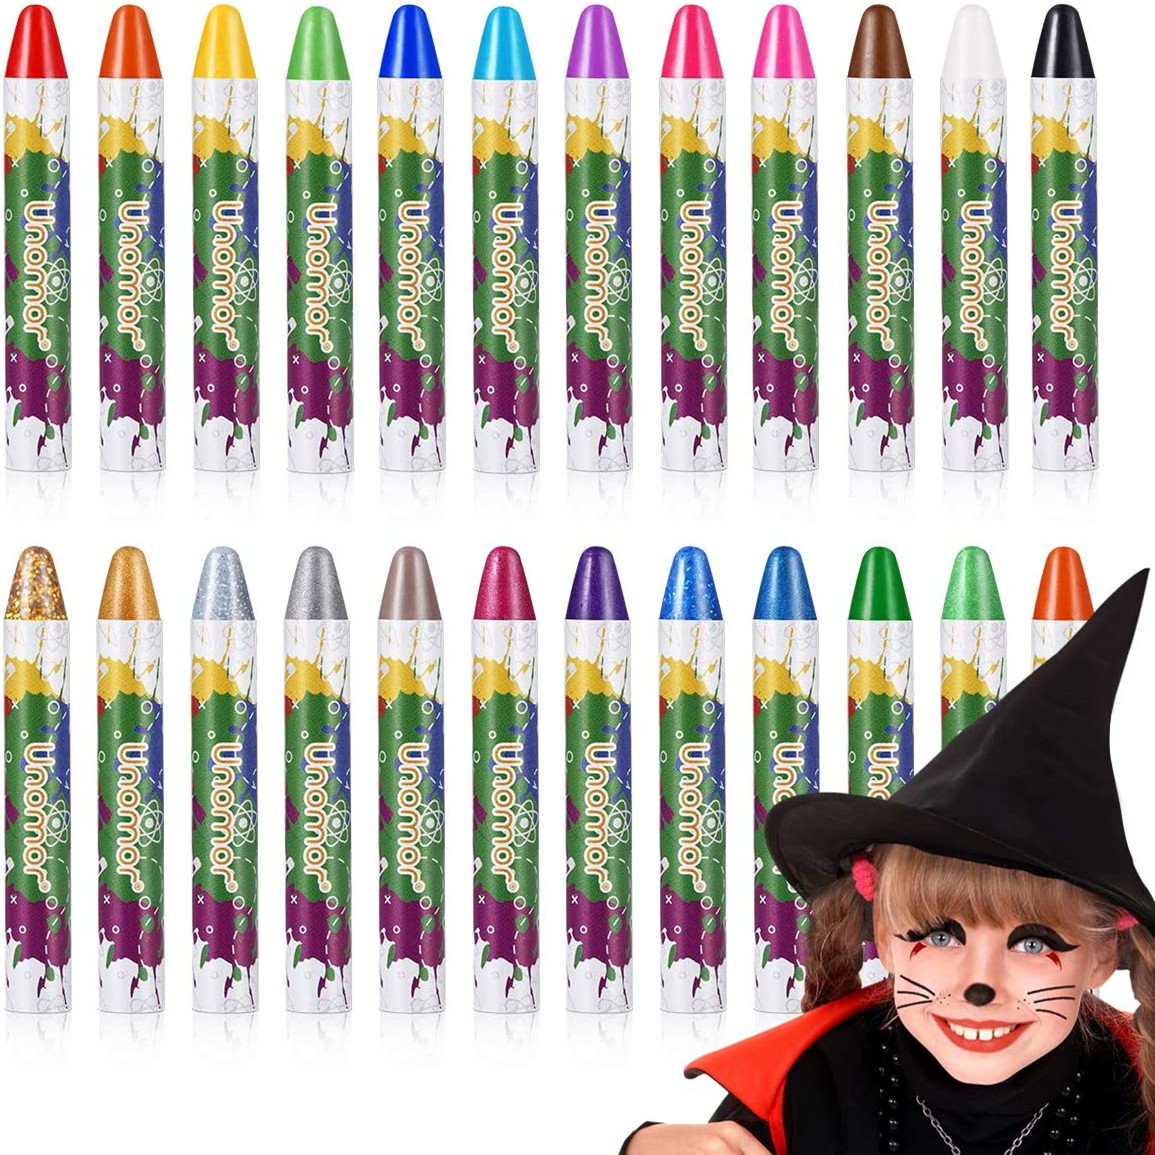 Halloween Makeup Kits, Halloween Face Paint Body Crayons for Kids Makeup Costume with 2 Color Body Glitter, 22 Colors